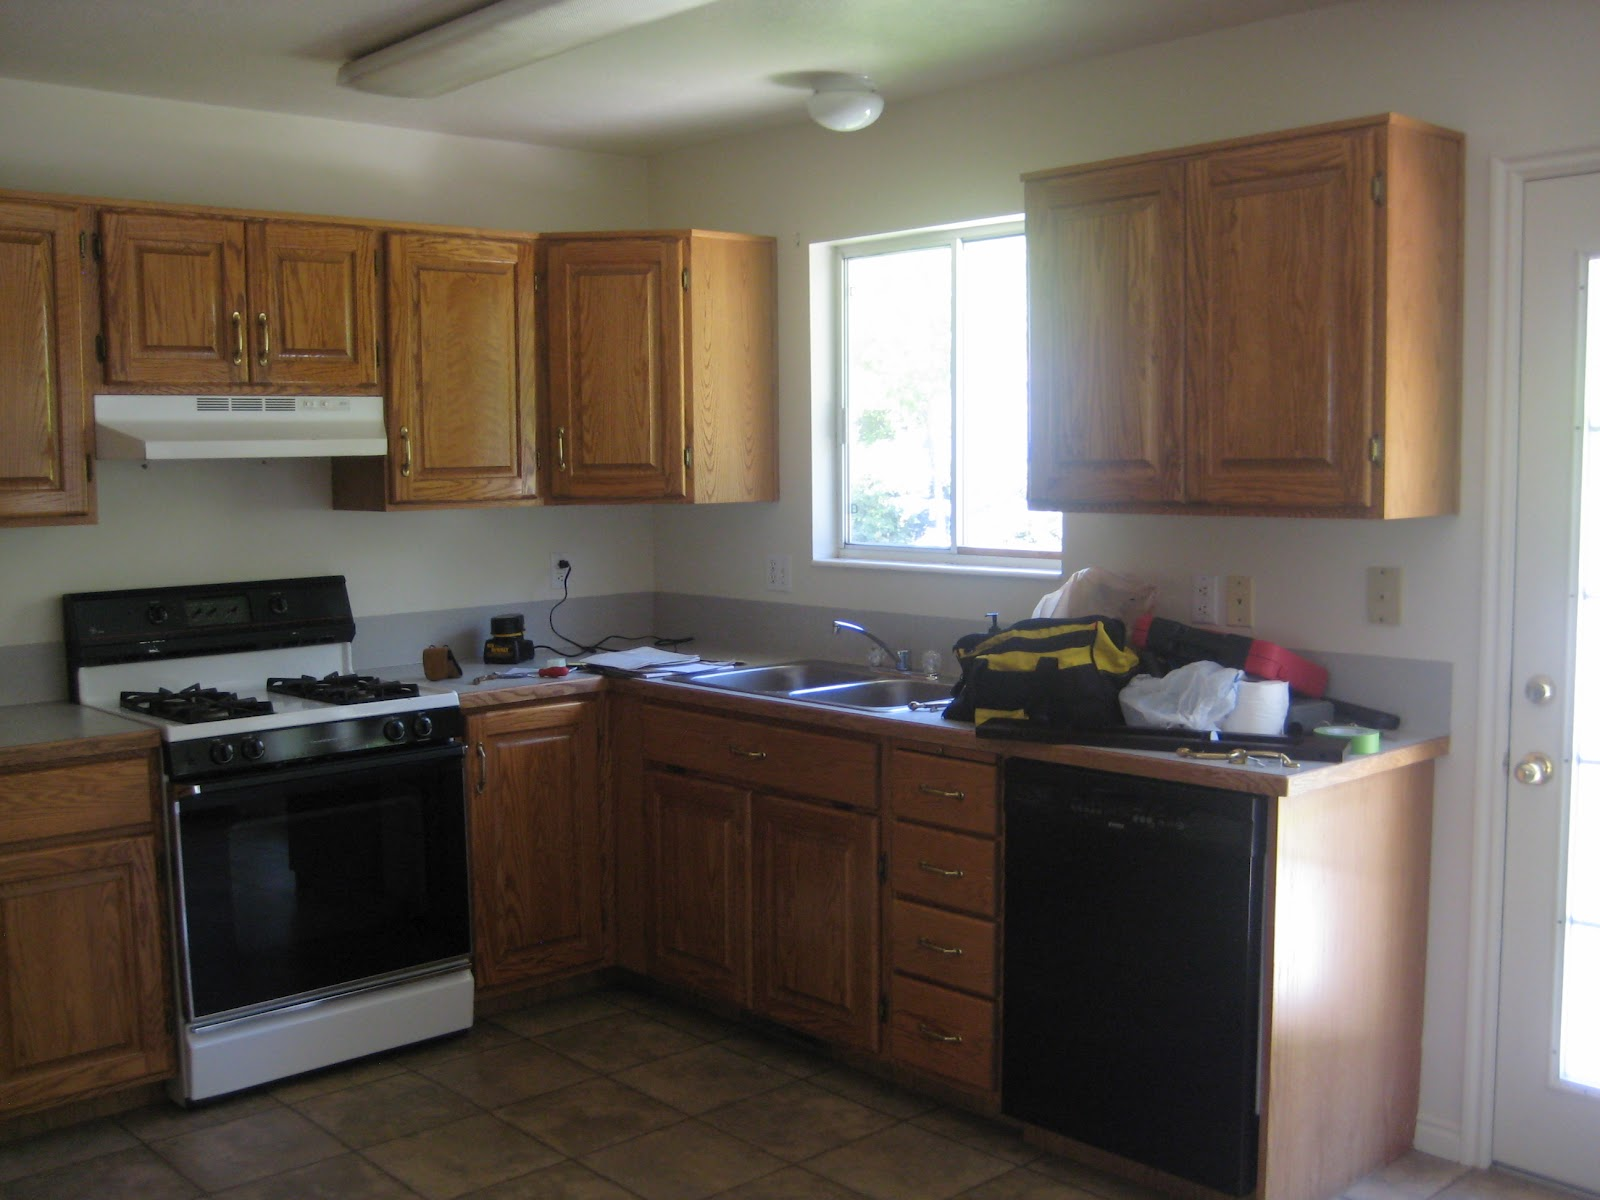 kitchen remodel big results on not so affordable kitchen remodel Kitchen Remodel Big Results on a Not So Big Budget